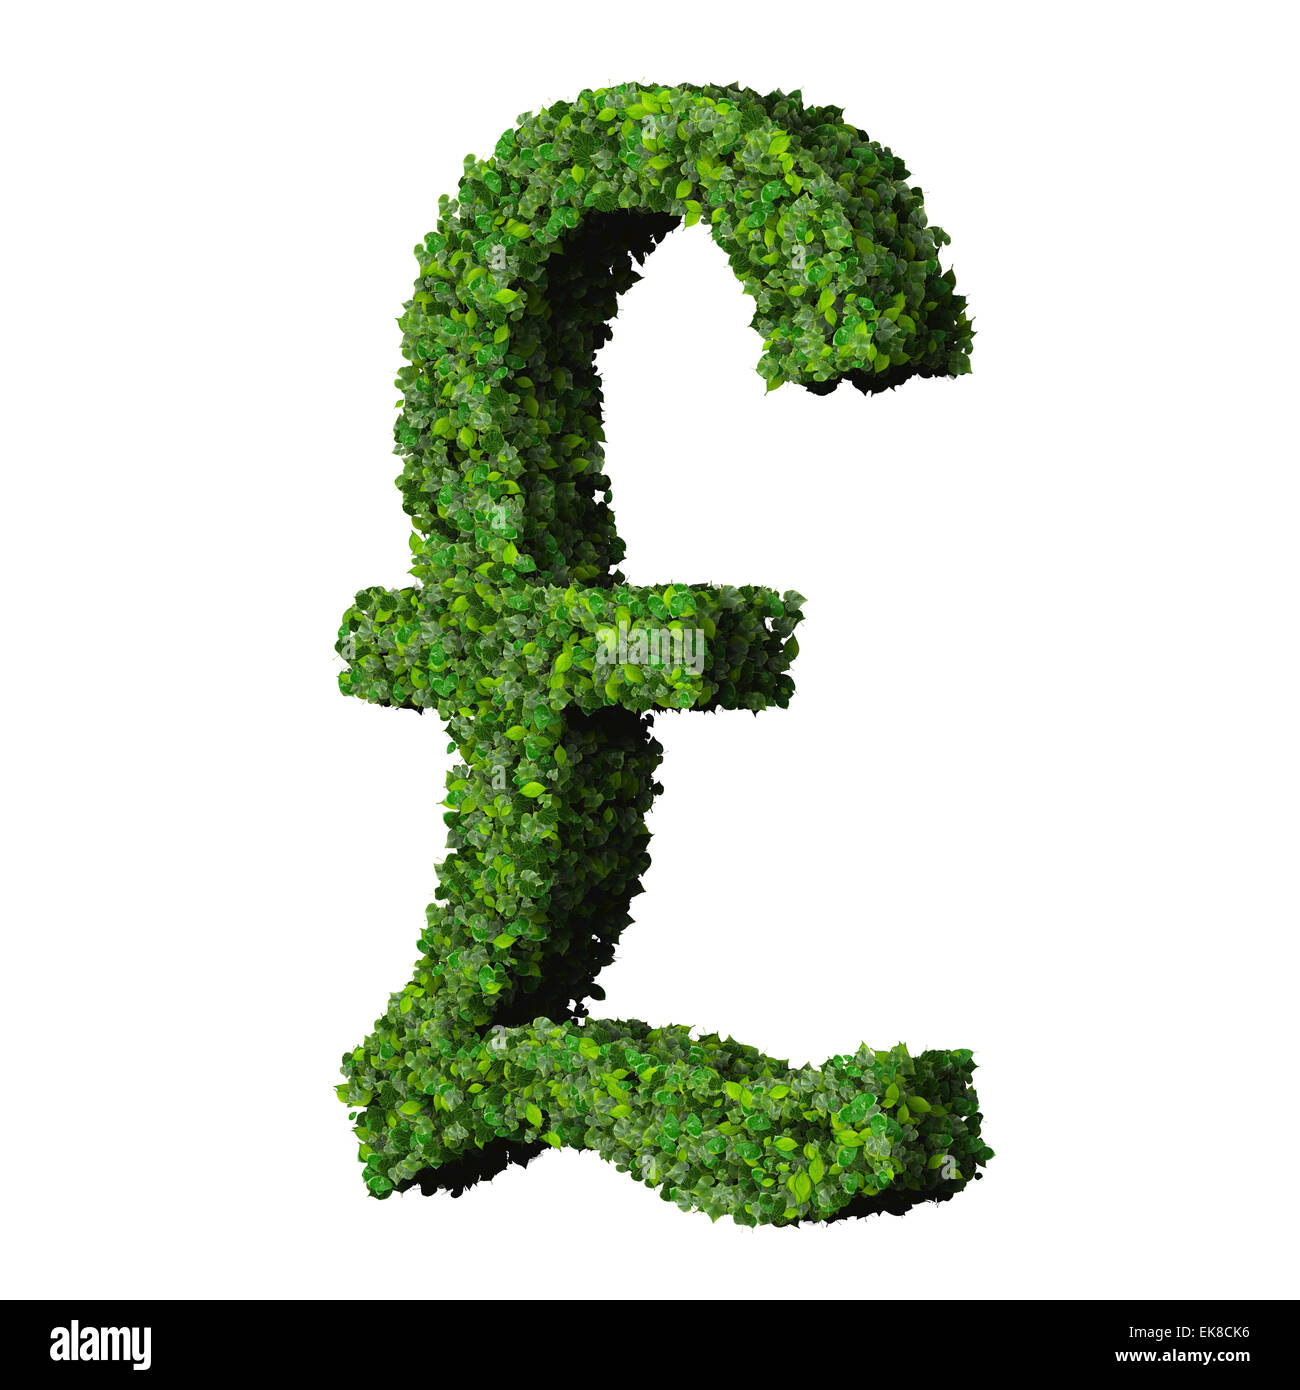 British Pound (currency) symbol or sign made from green leaves isolated on white background. 3d render. - Stock Image